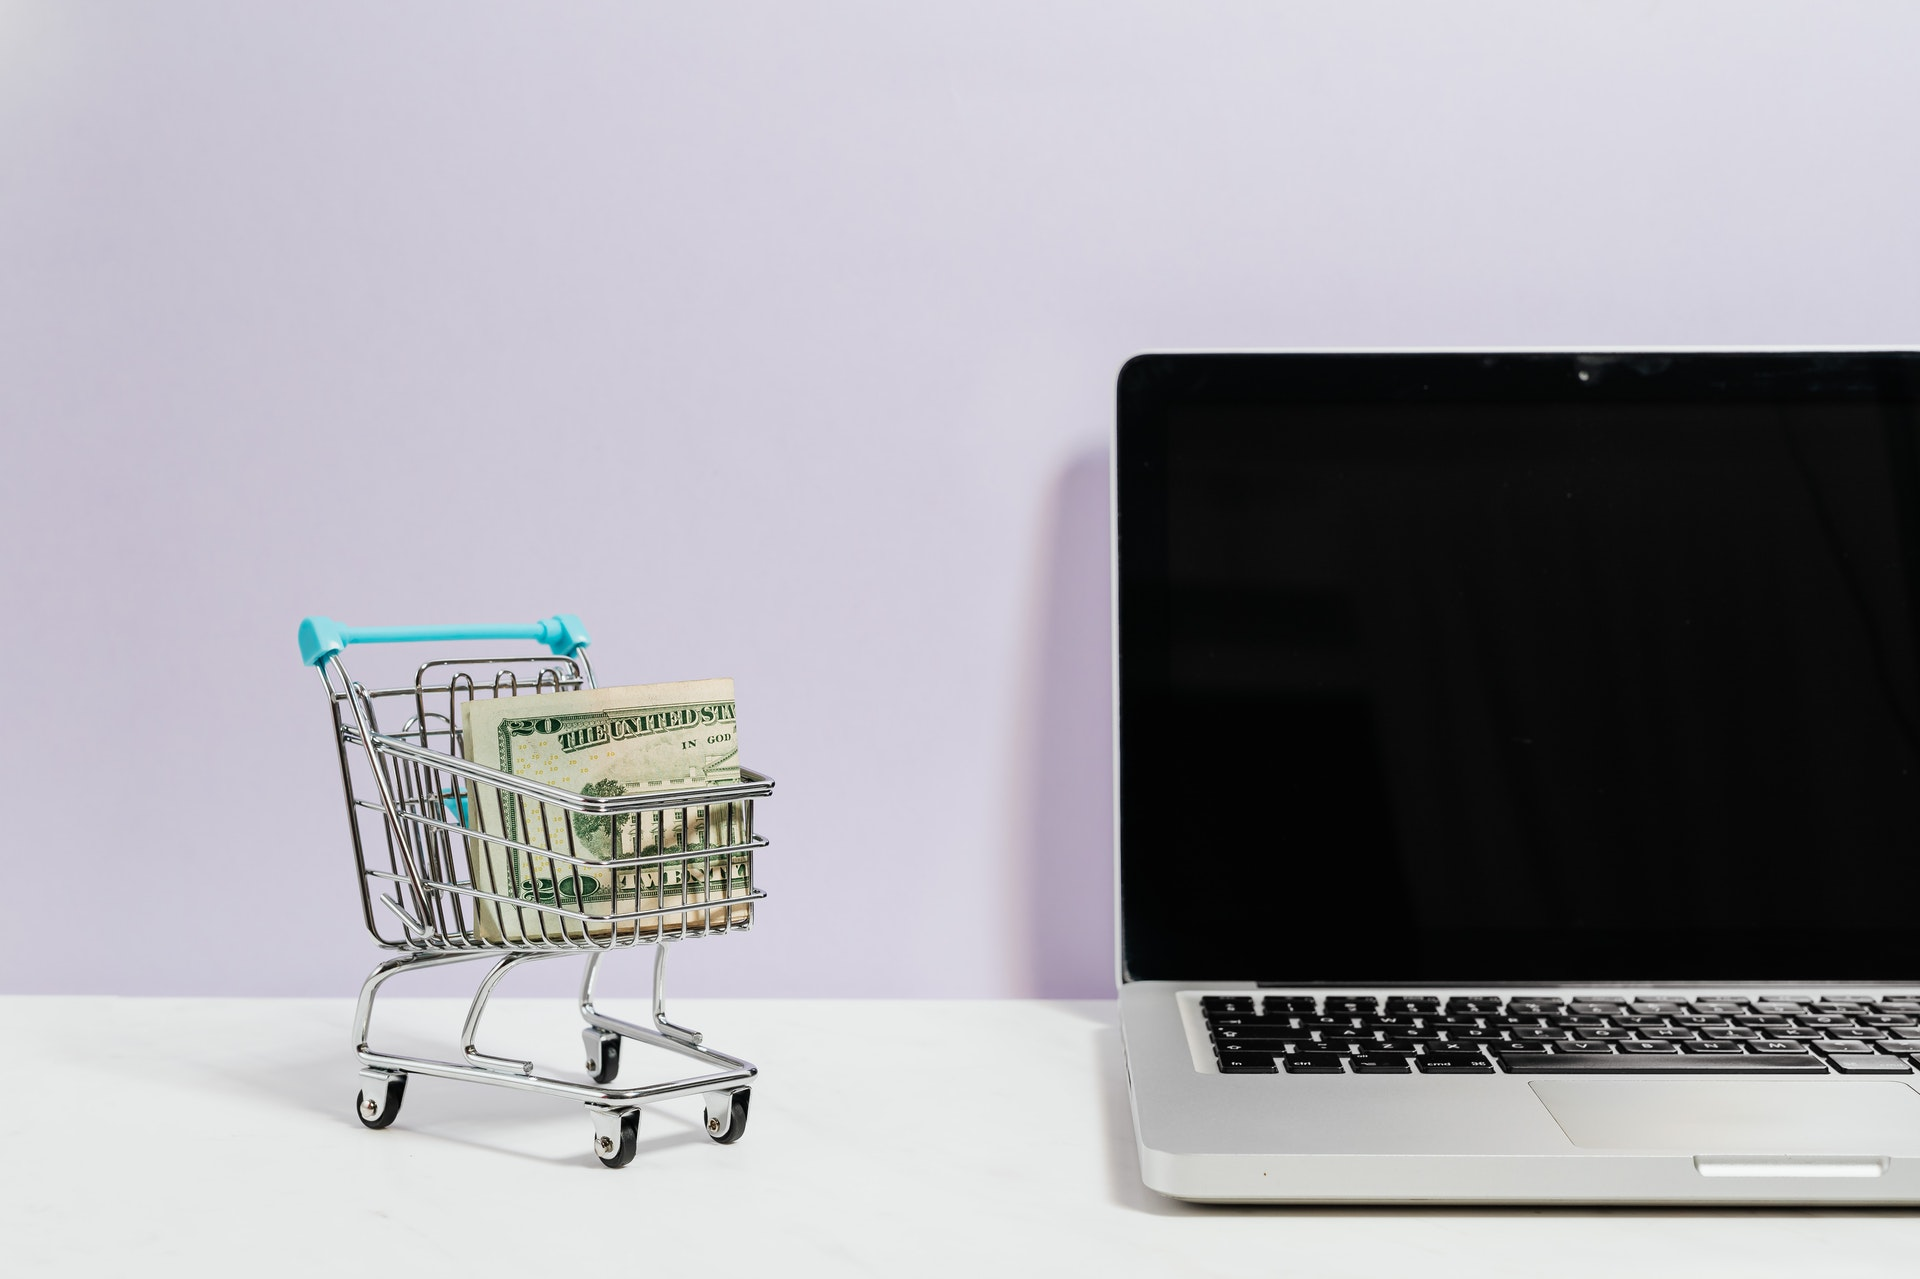 Web shop - Photo by Karolina Grabowska from Pexels